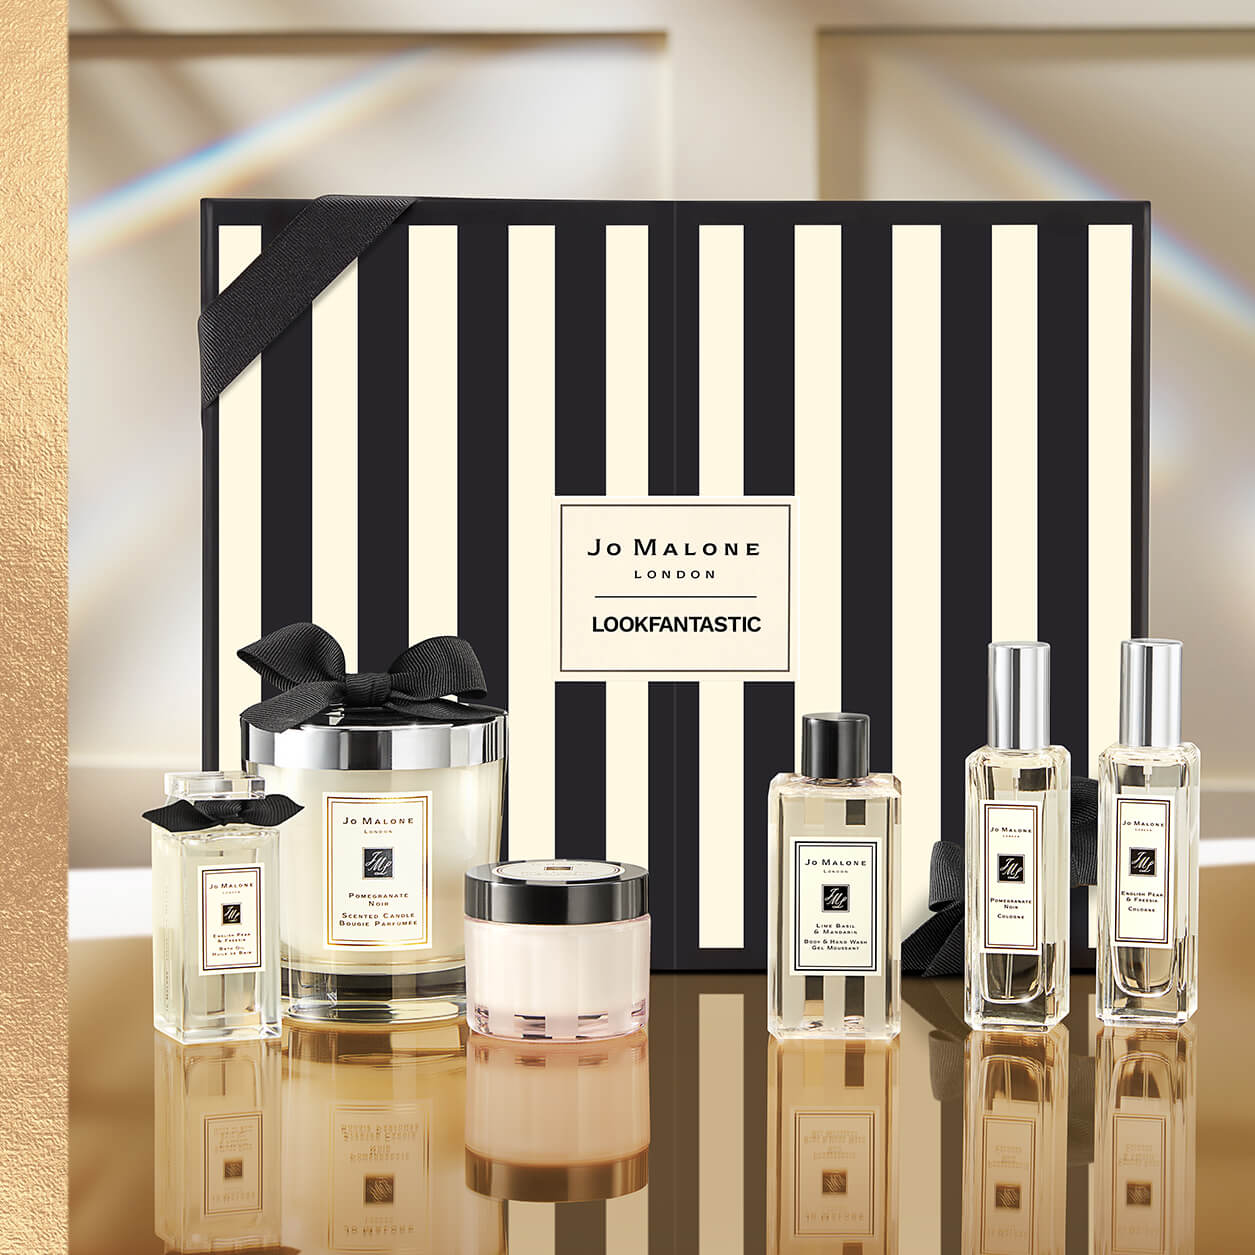 LOOKFANTASTIC x Jo Malone London Limited Edition Beauty Box